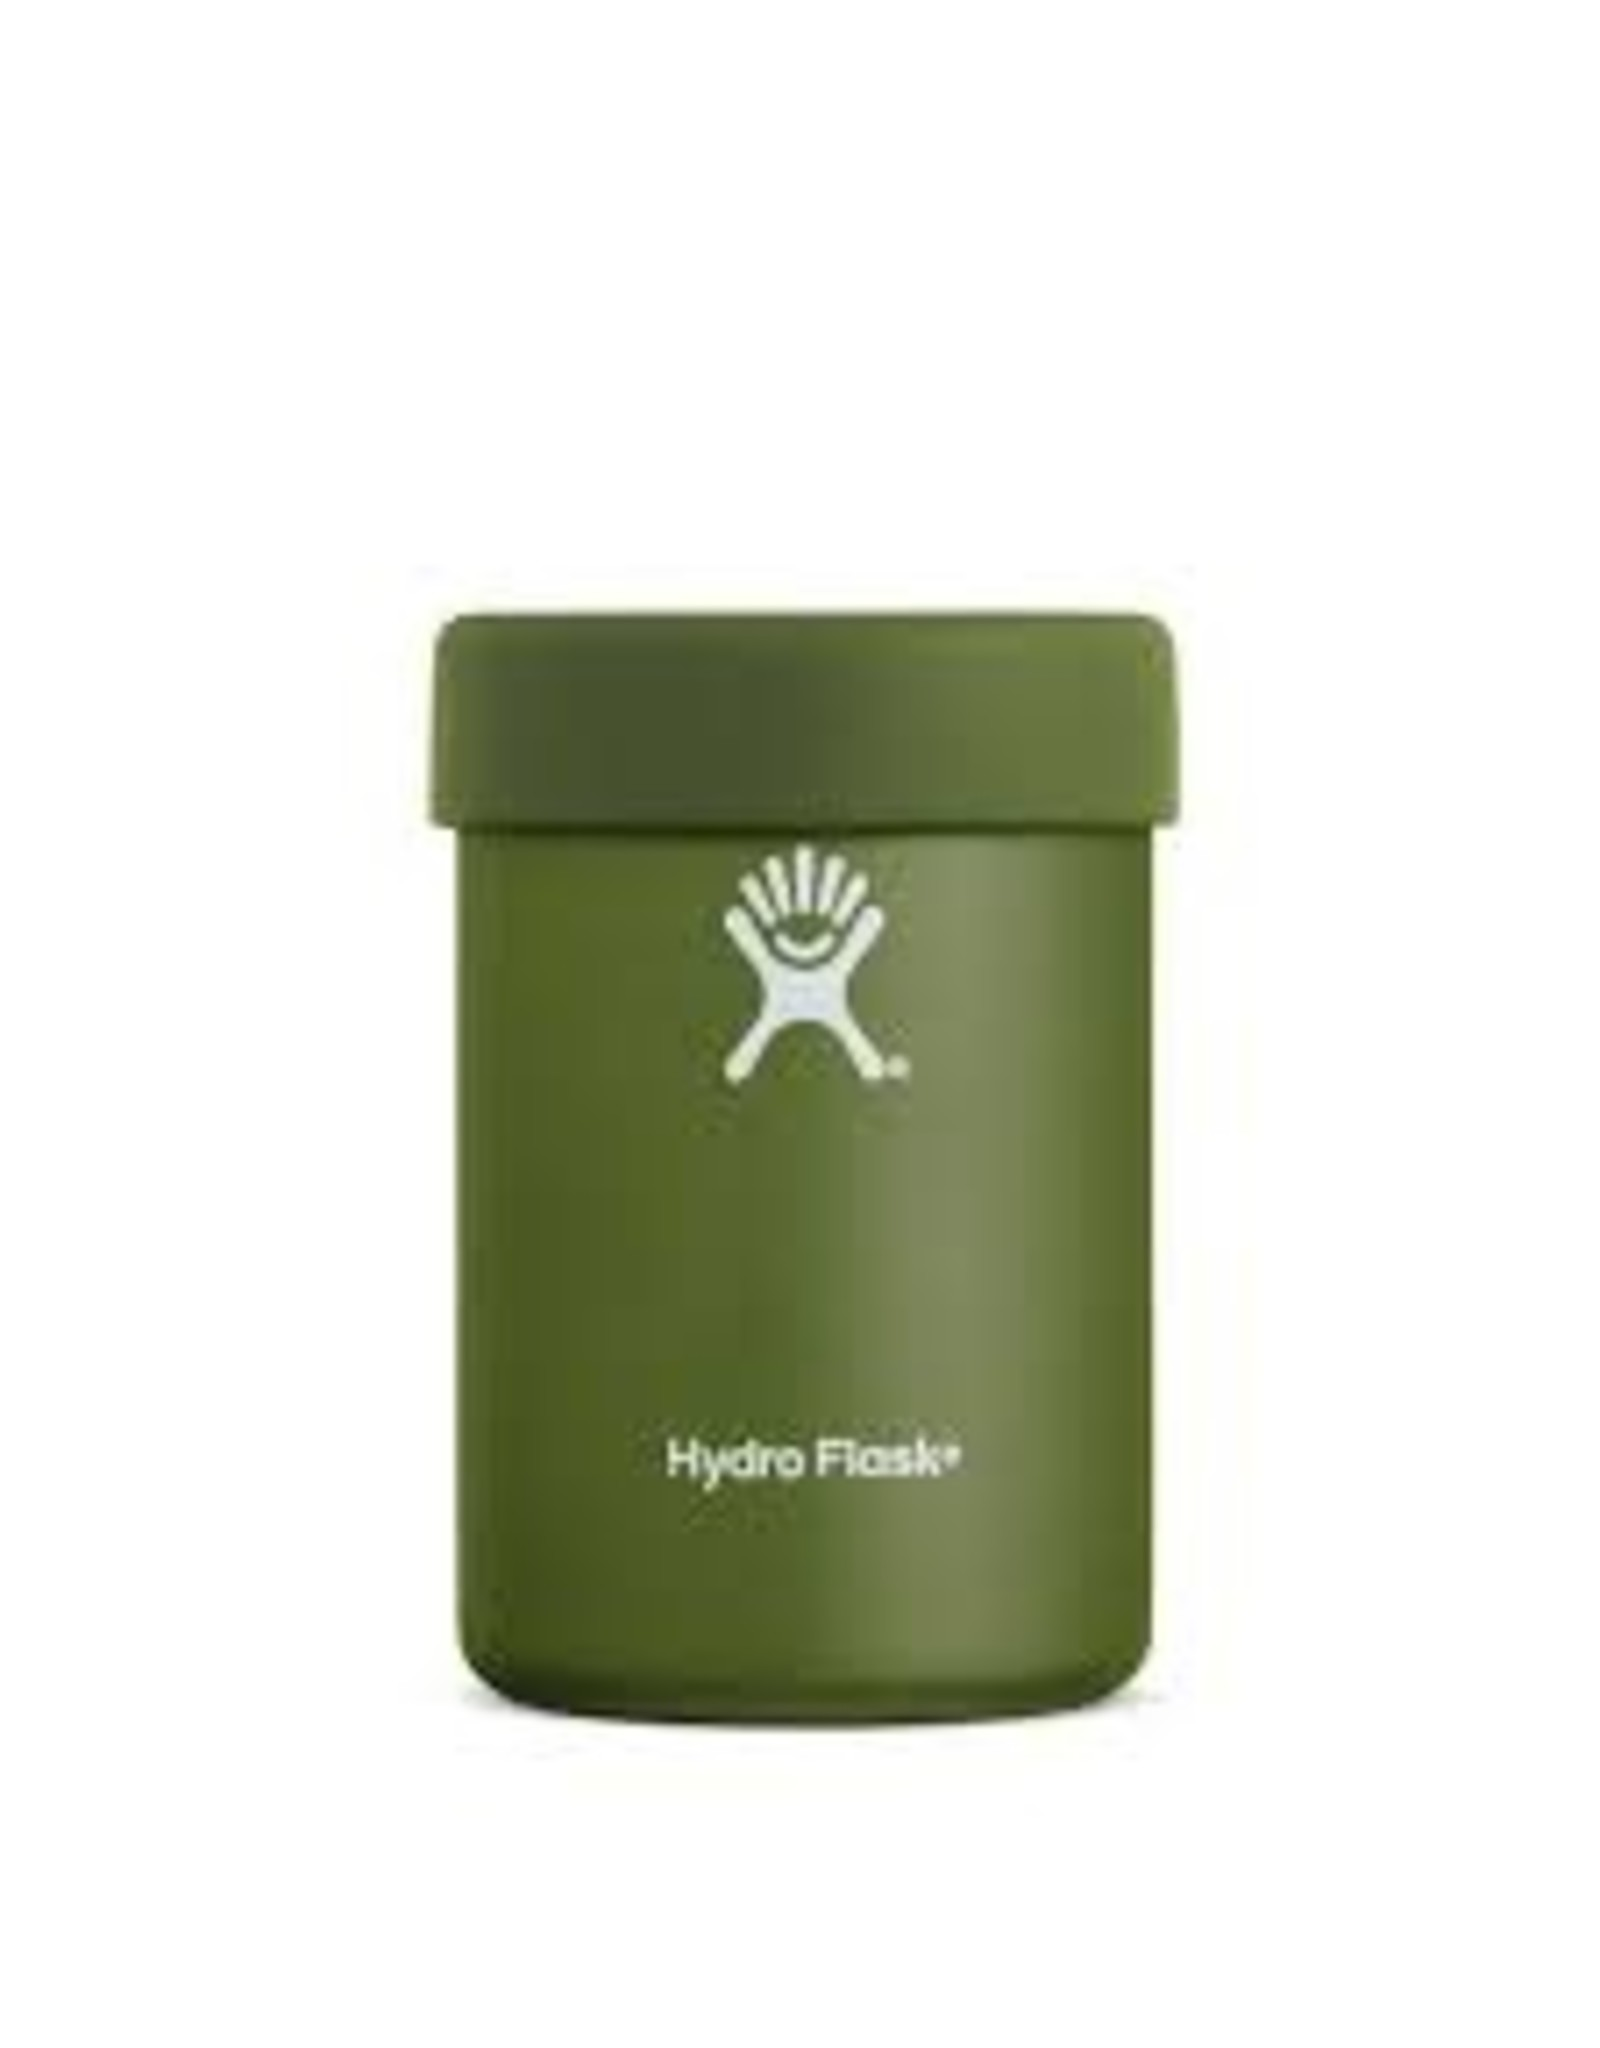 Hydro Flask Hydro Flask Cooler Cup Olive